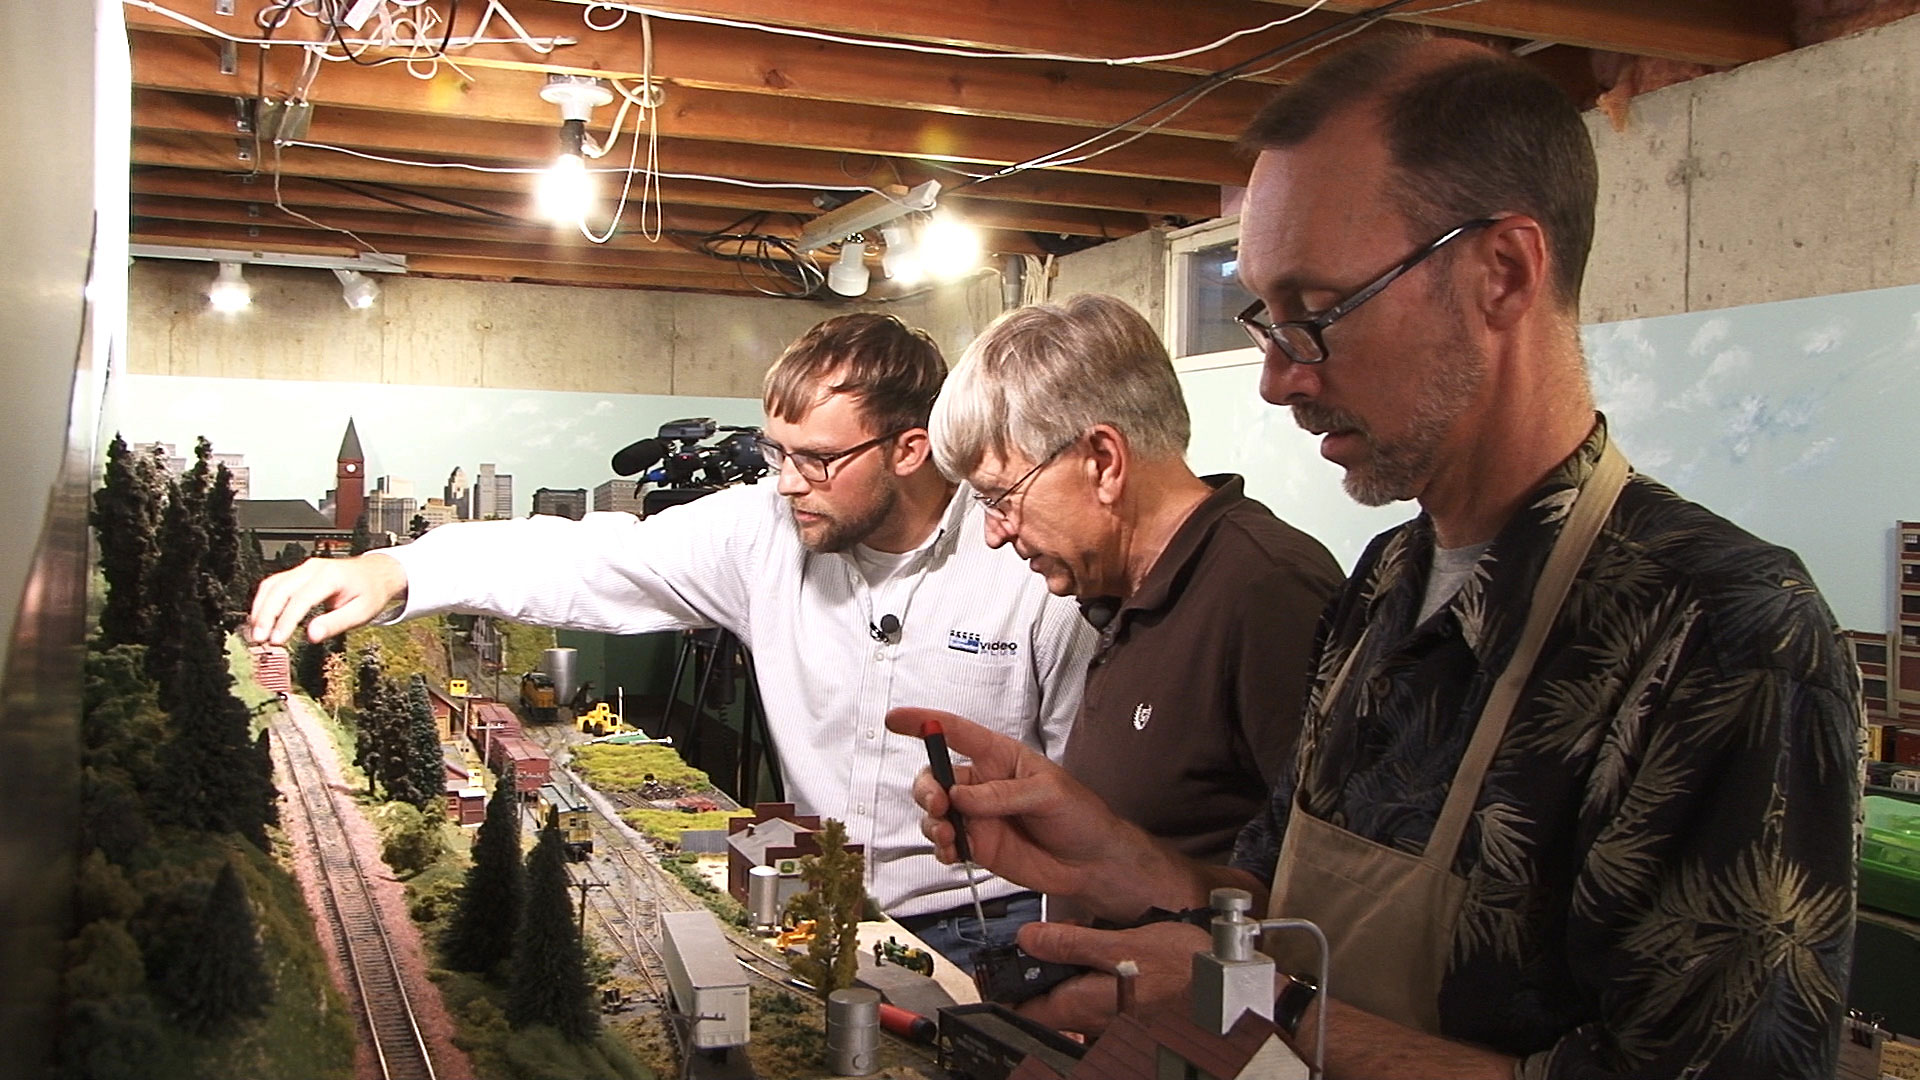 Three people from a model railroader club working together on a layout